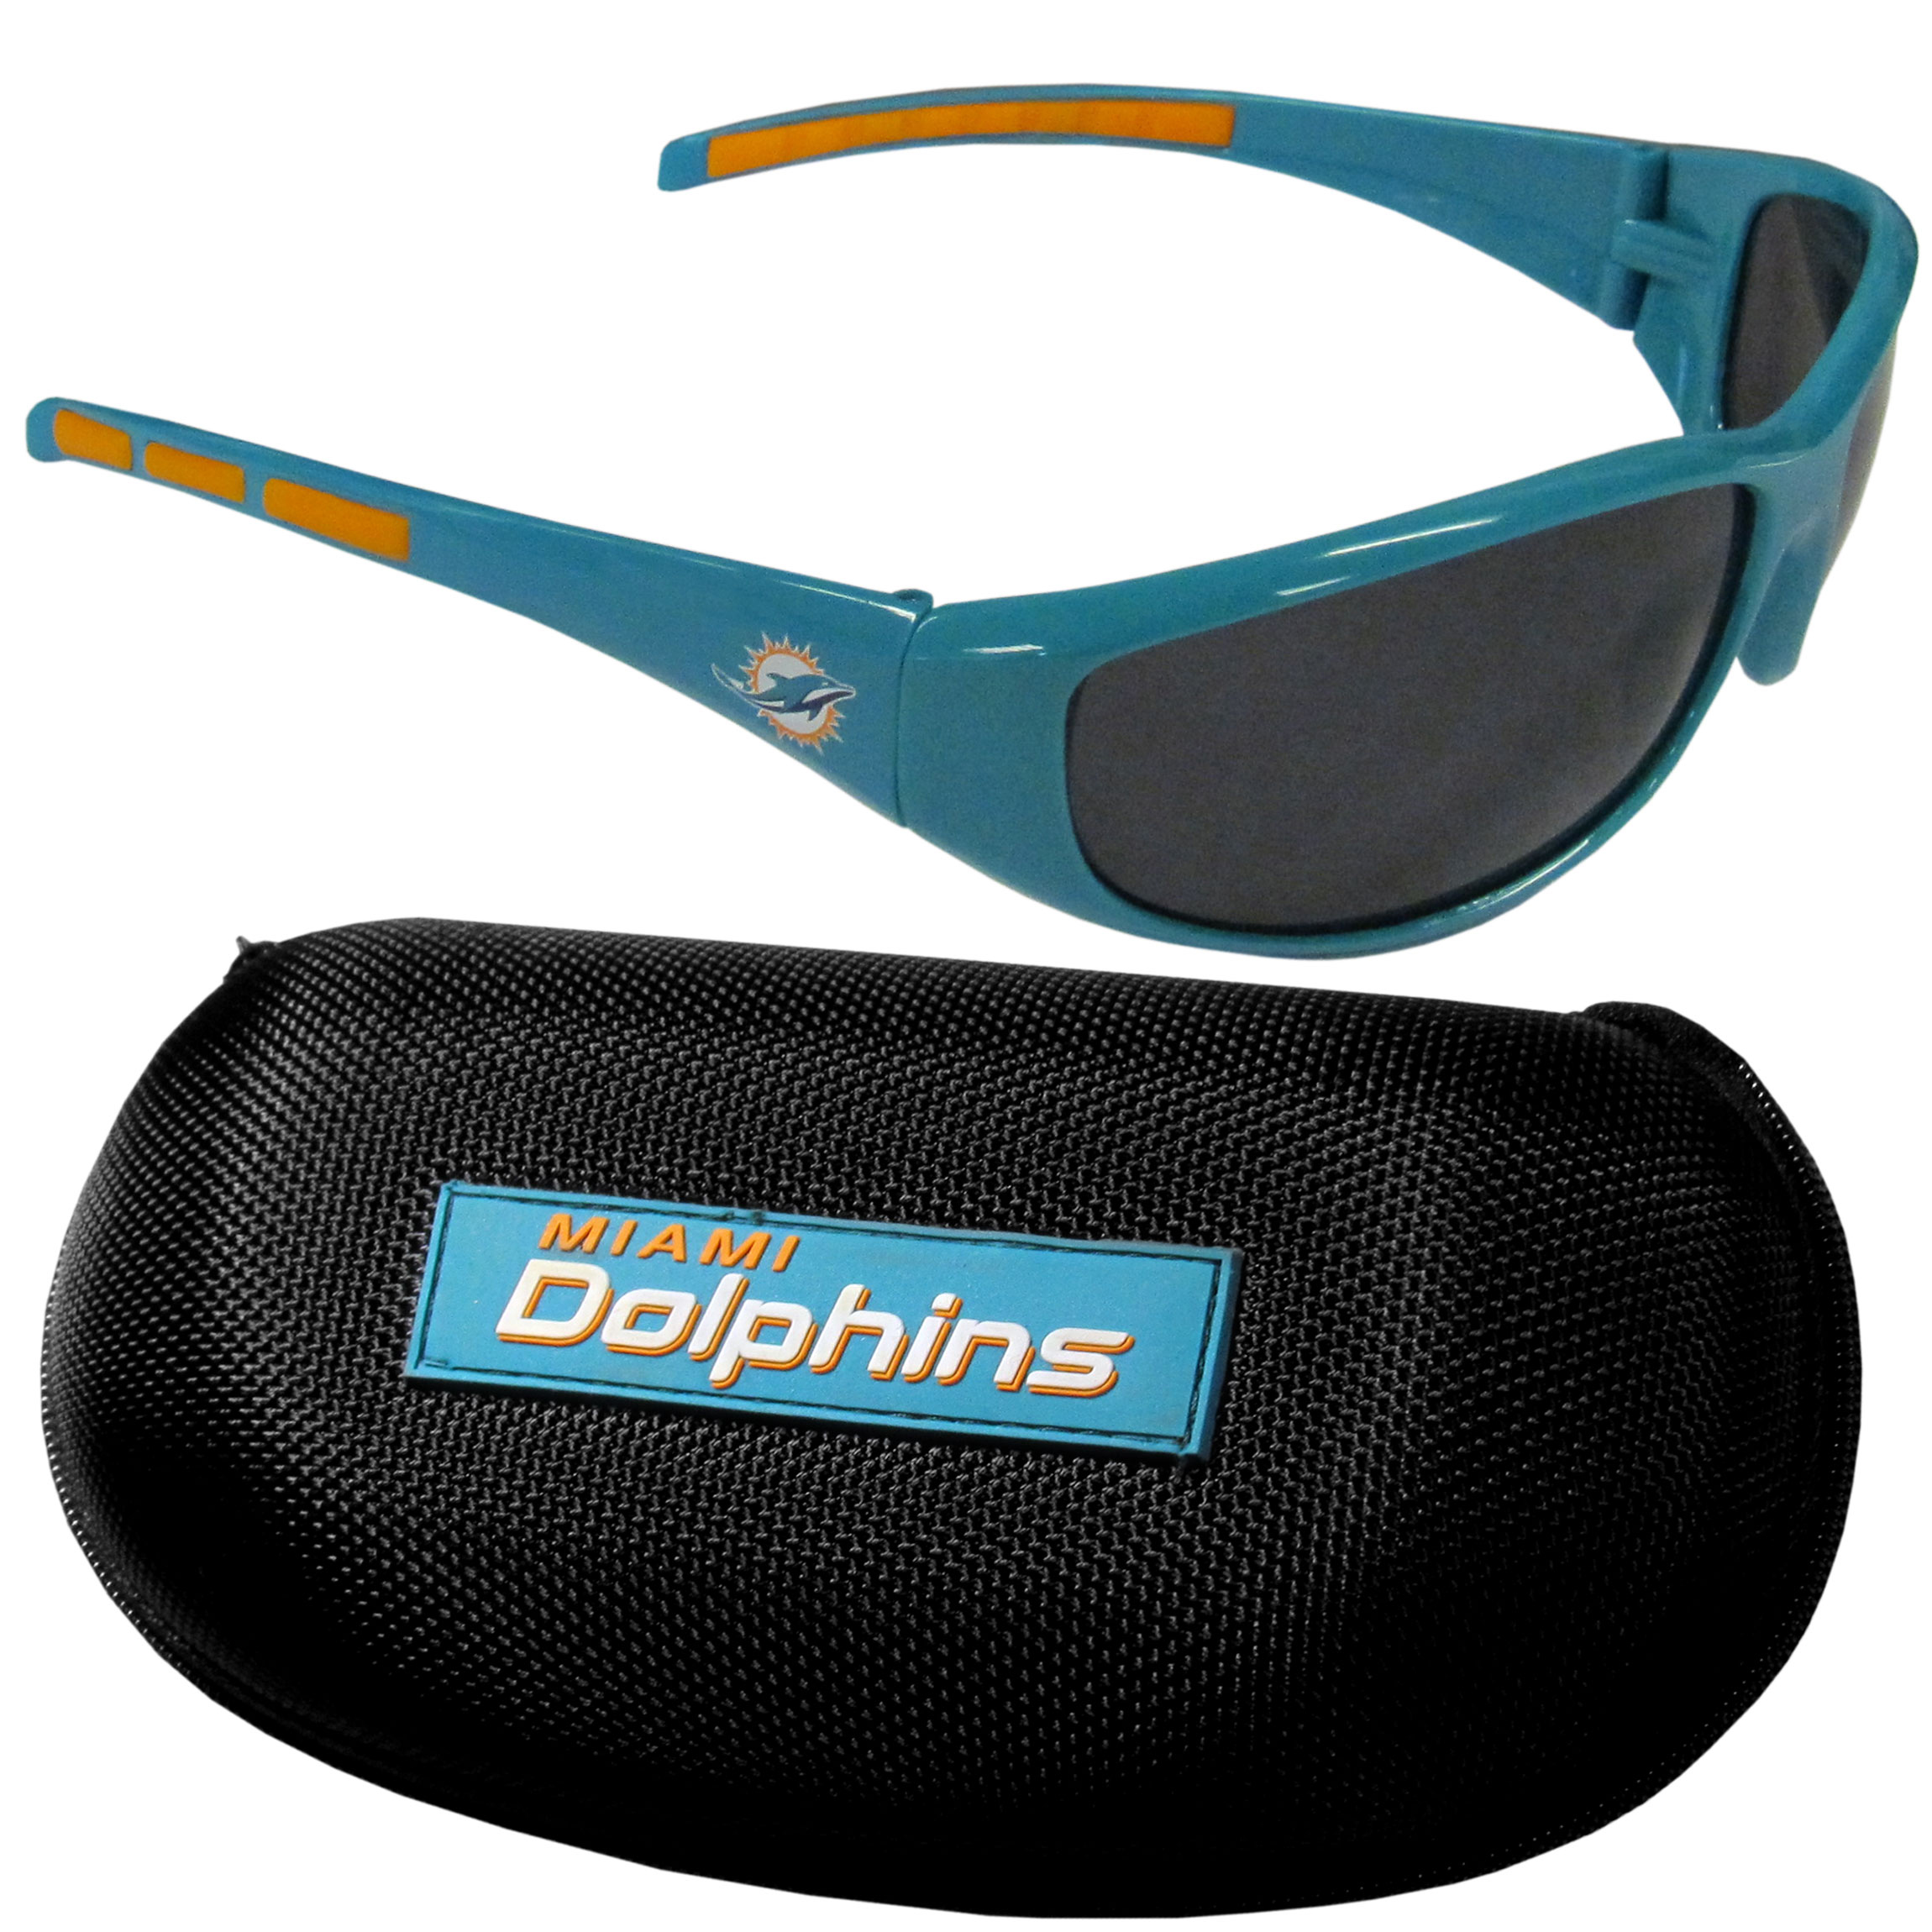 Miami Dolphins Wrap Sunglass and Case Set - This great set includes a high quality pair of Miami Dolphinswrap sunglasses and hard carrying case.